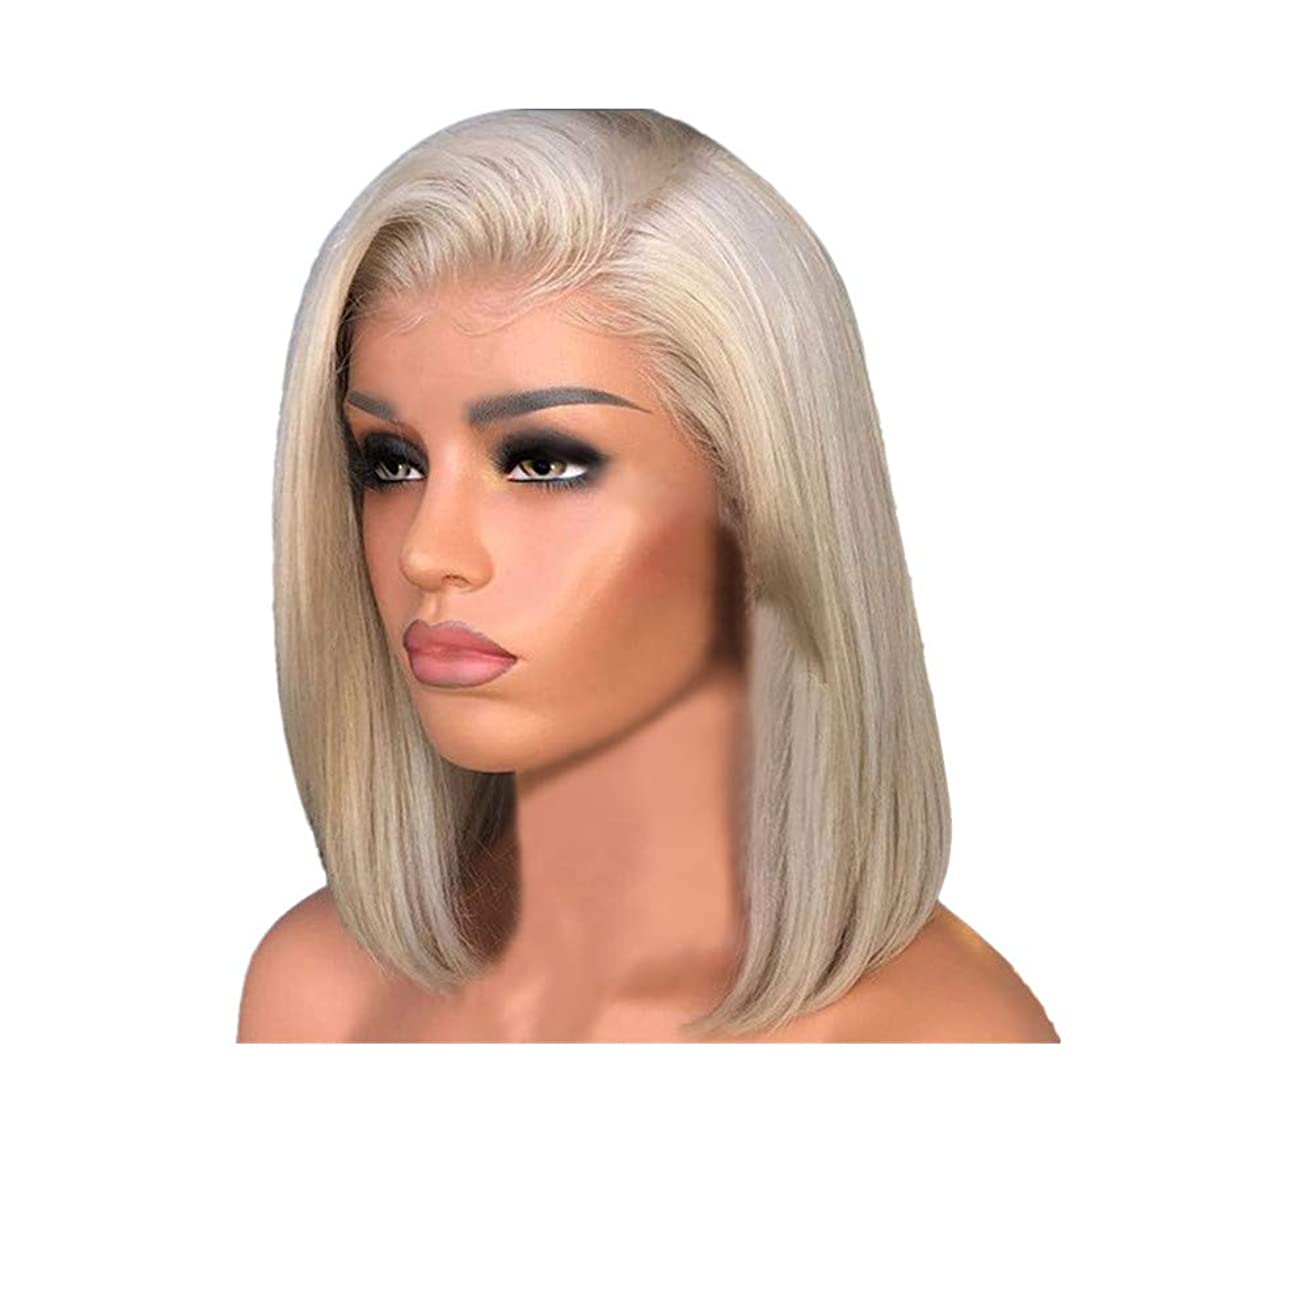 Kulywon Wig with Baby Hair Human Hair Full End Short Bob Wigs For Black Women